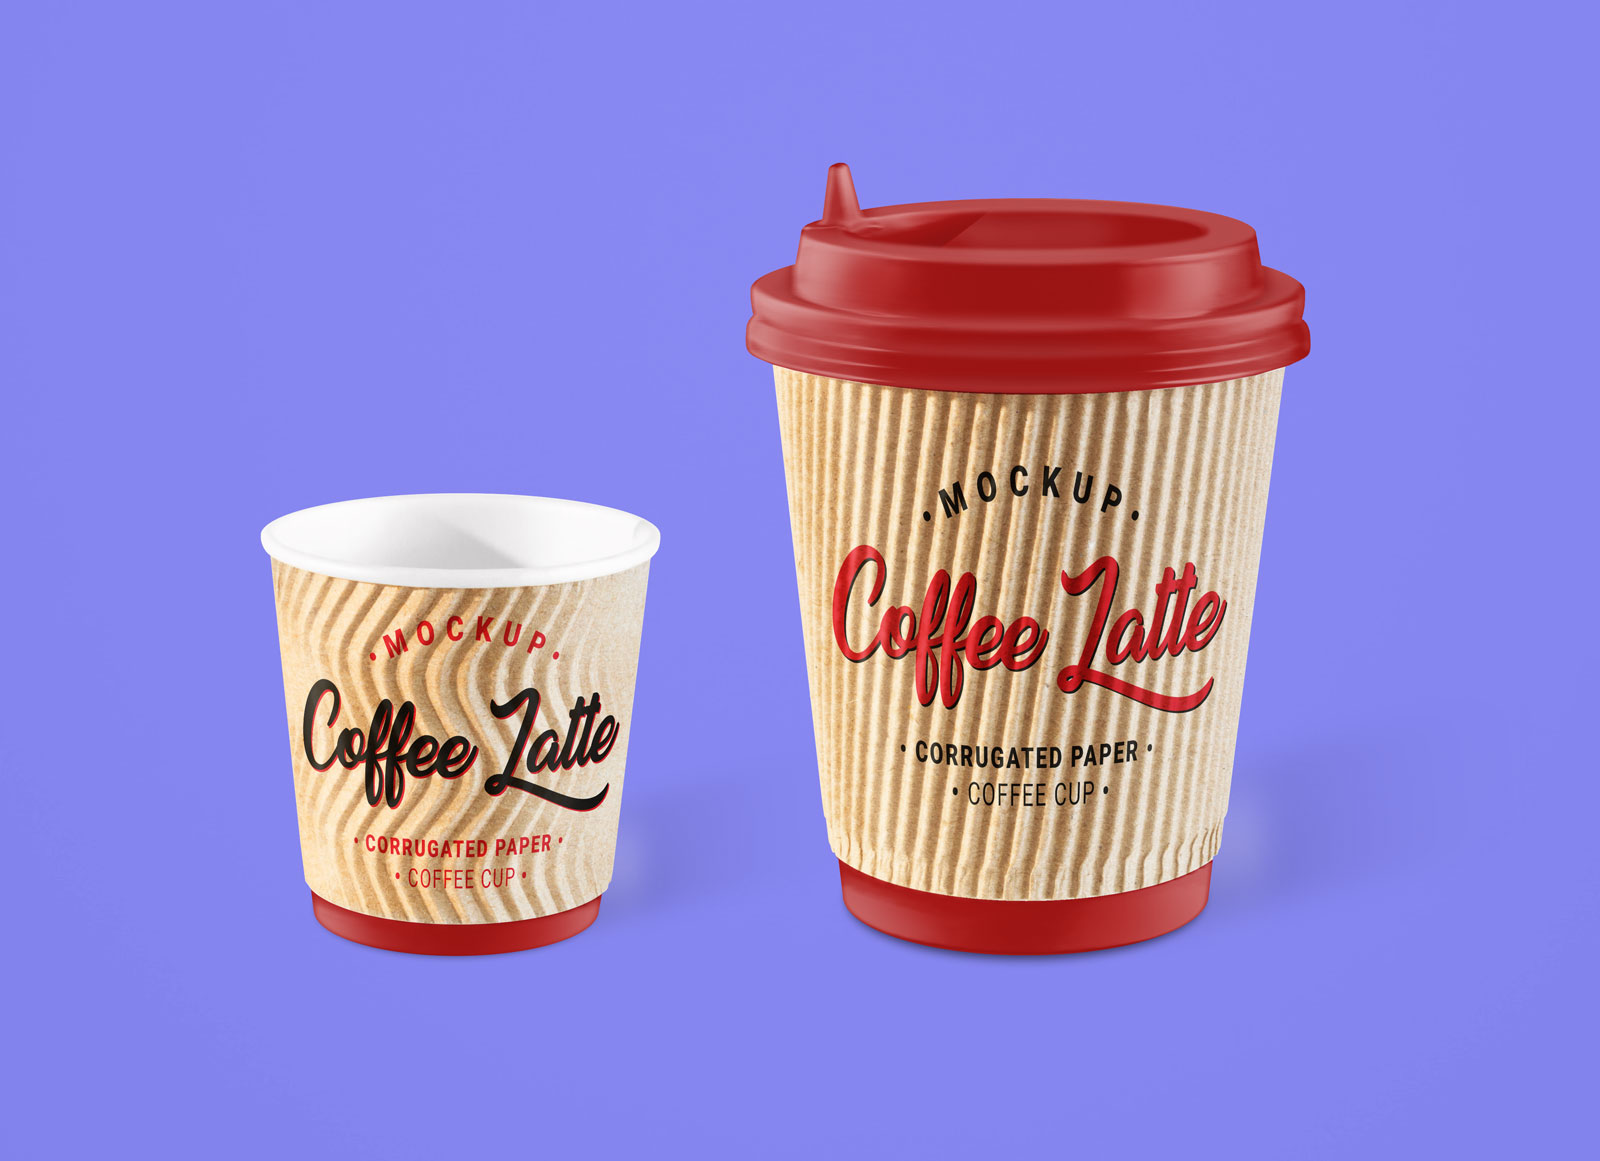 Free-Corrugated-Sleeves-Coffee-Cup-Mockup-PSD-Set